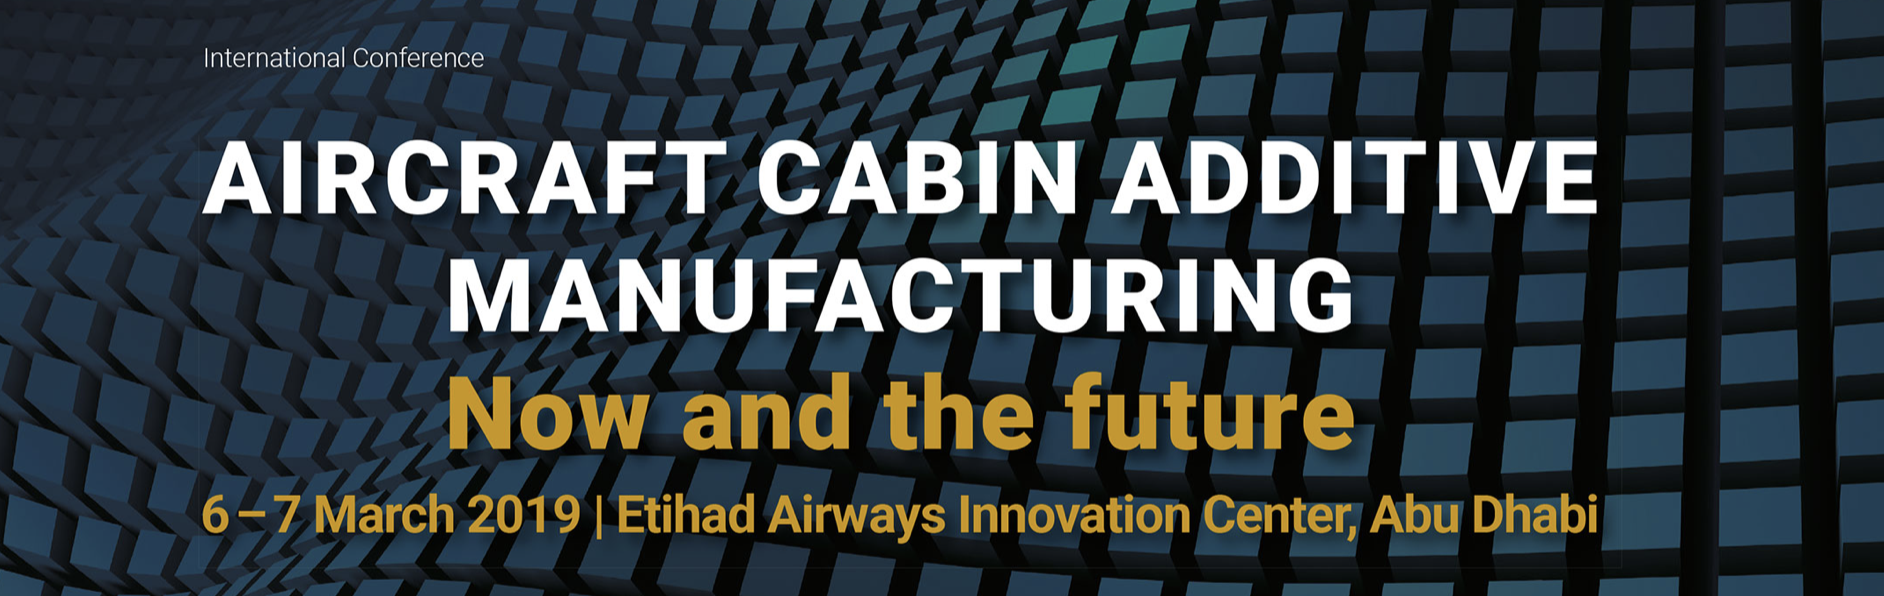 Aviation conference RedCabin